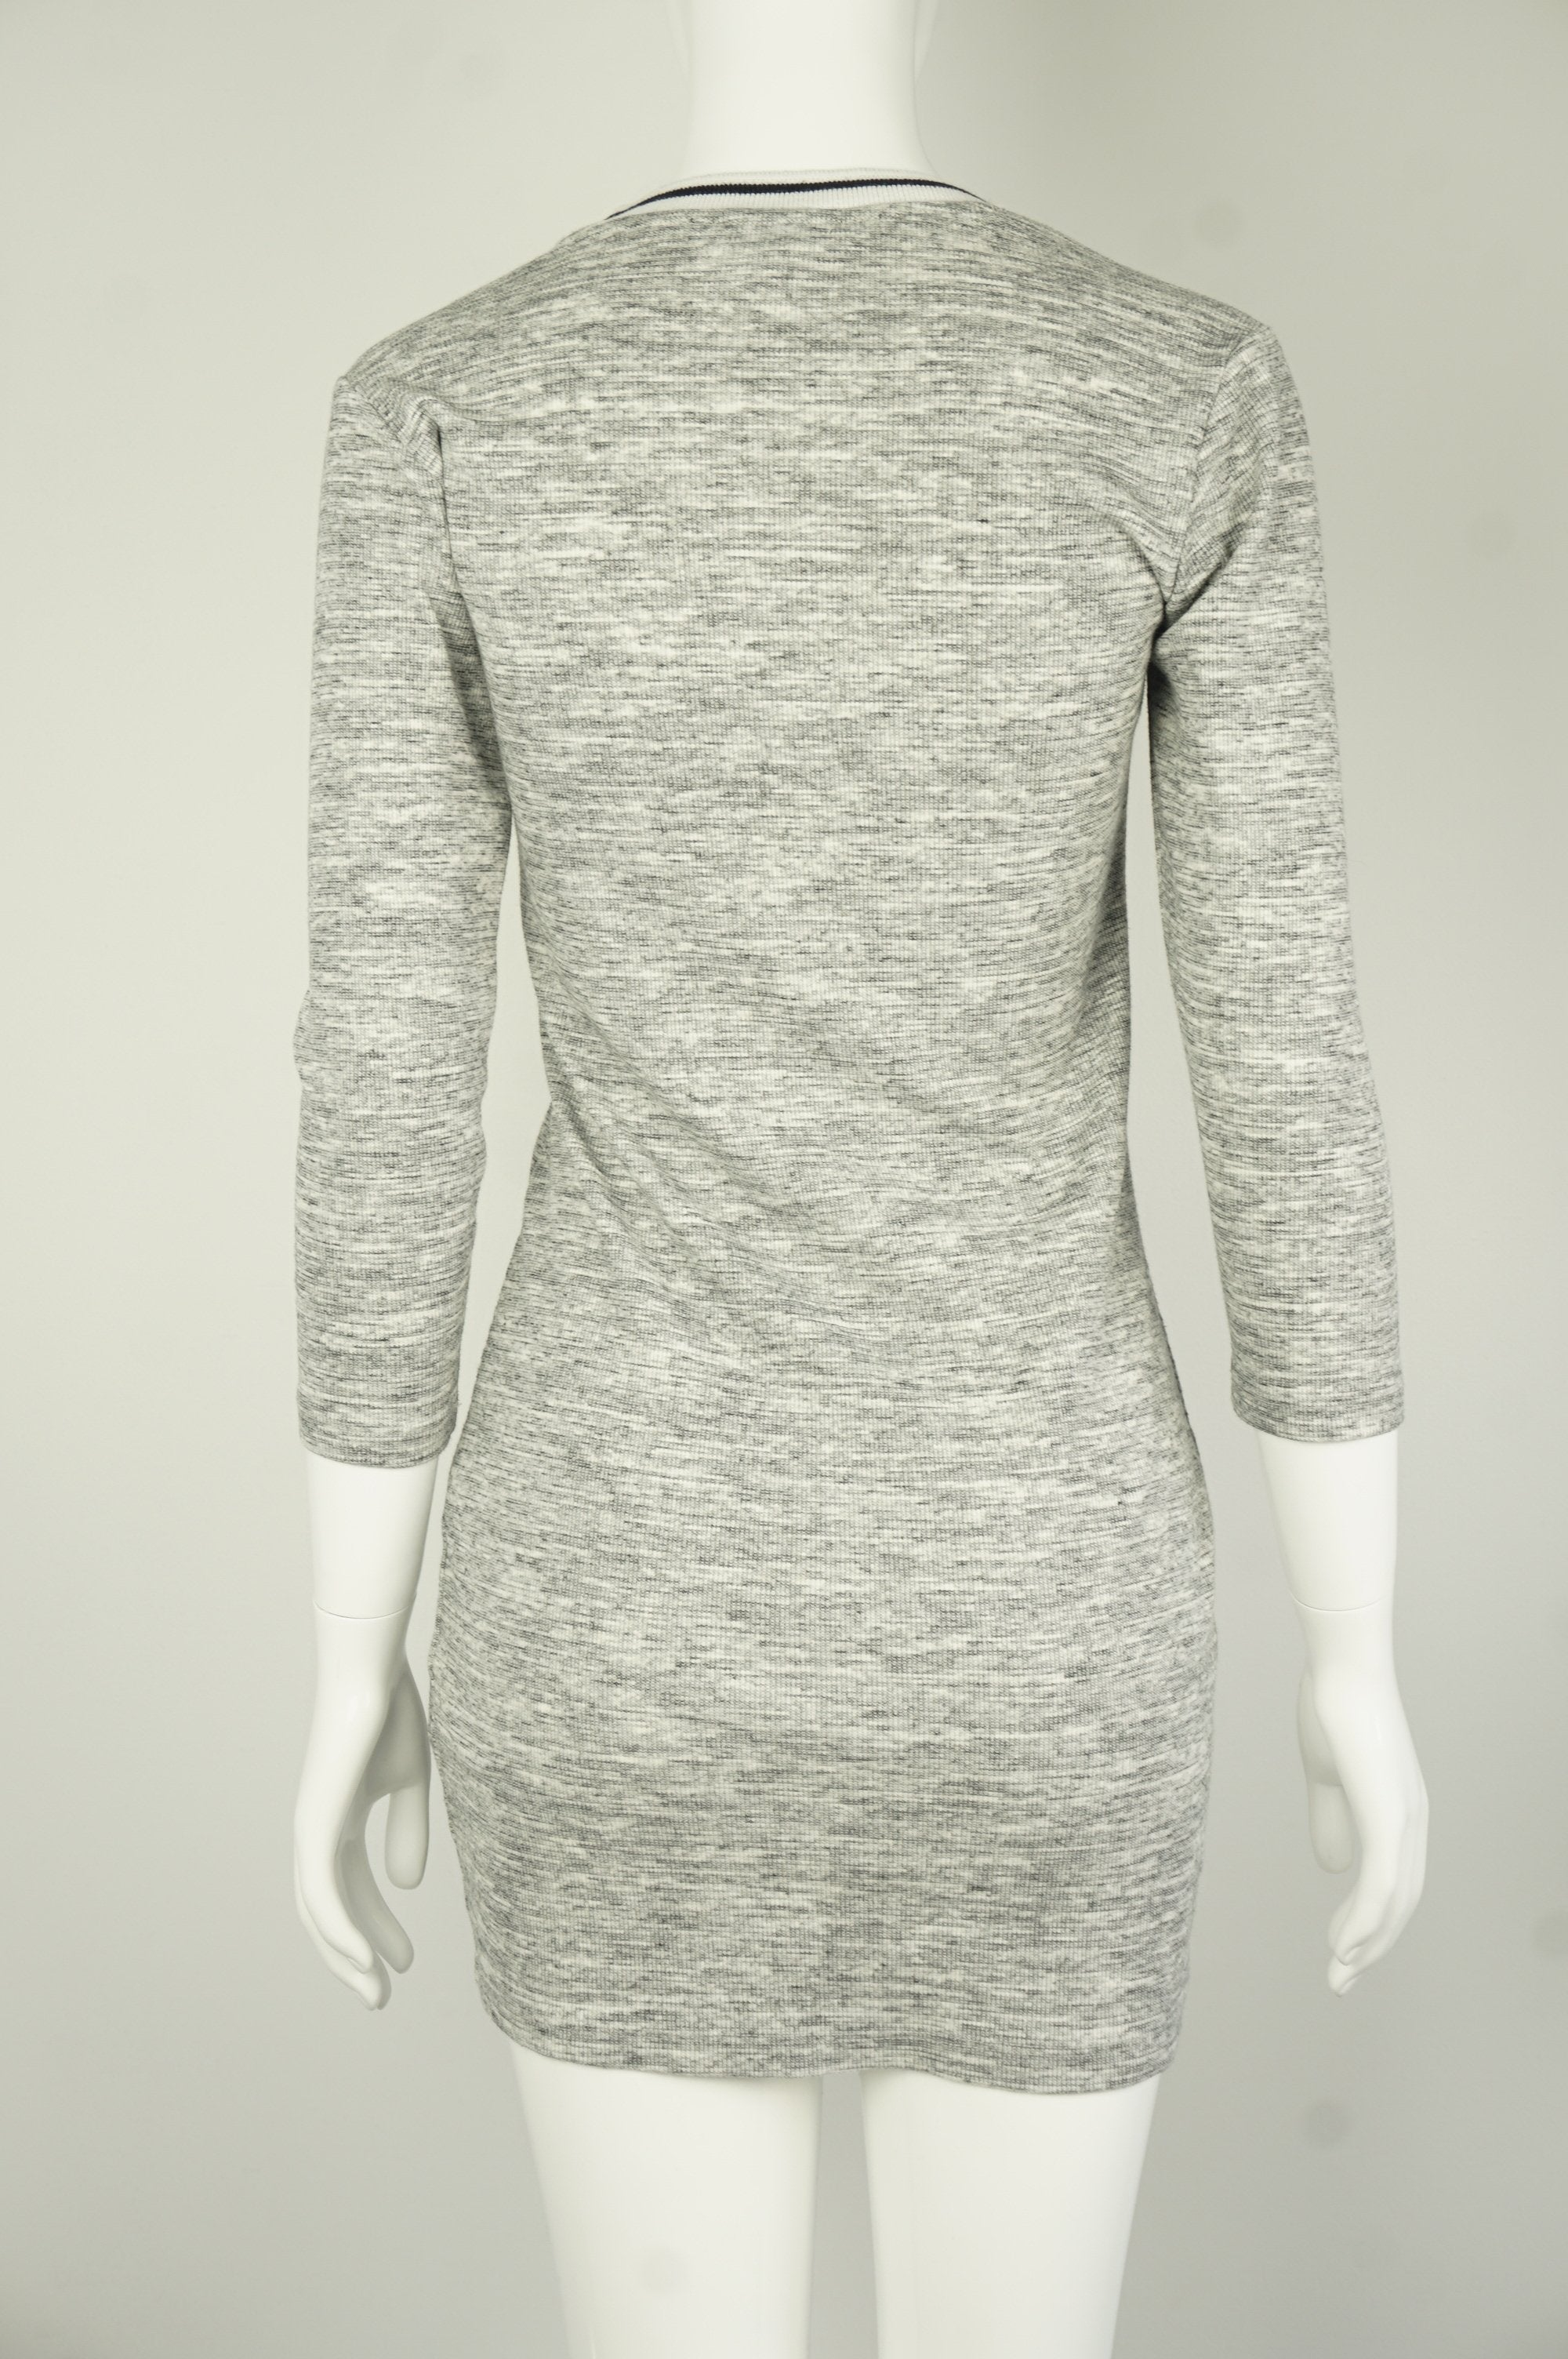 Forever 21 Simple Grey Straight-Cut Mini Dress with Striped Round Neck, Simple and comfy, this Grey Straight-Cut Mini Dress with Striped Round Neck is perfect for outings, casual hangouts, and business casual events.  , Grey, Cotton Fabric, women's Dresses & Skirts, women's Grey Dresses & Skirts, Forever 21 women's Dresses & Skirts, Simple Casual Women's Dress, Straight Cut Comfy Women's Dress, Women's Baseball Dress